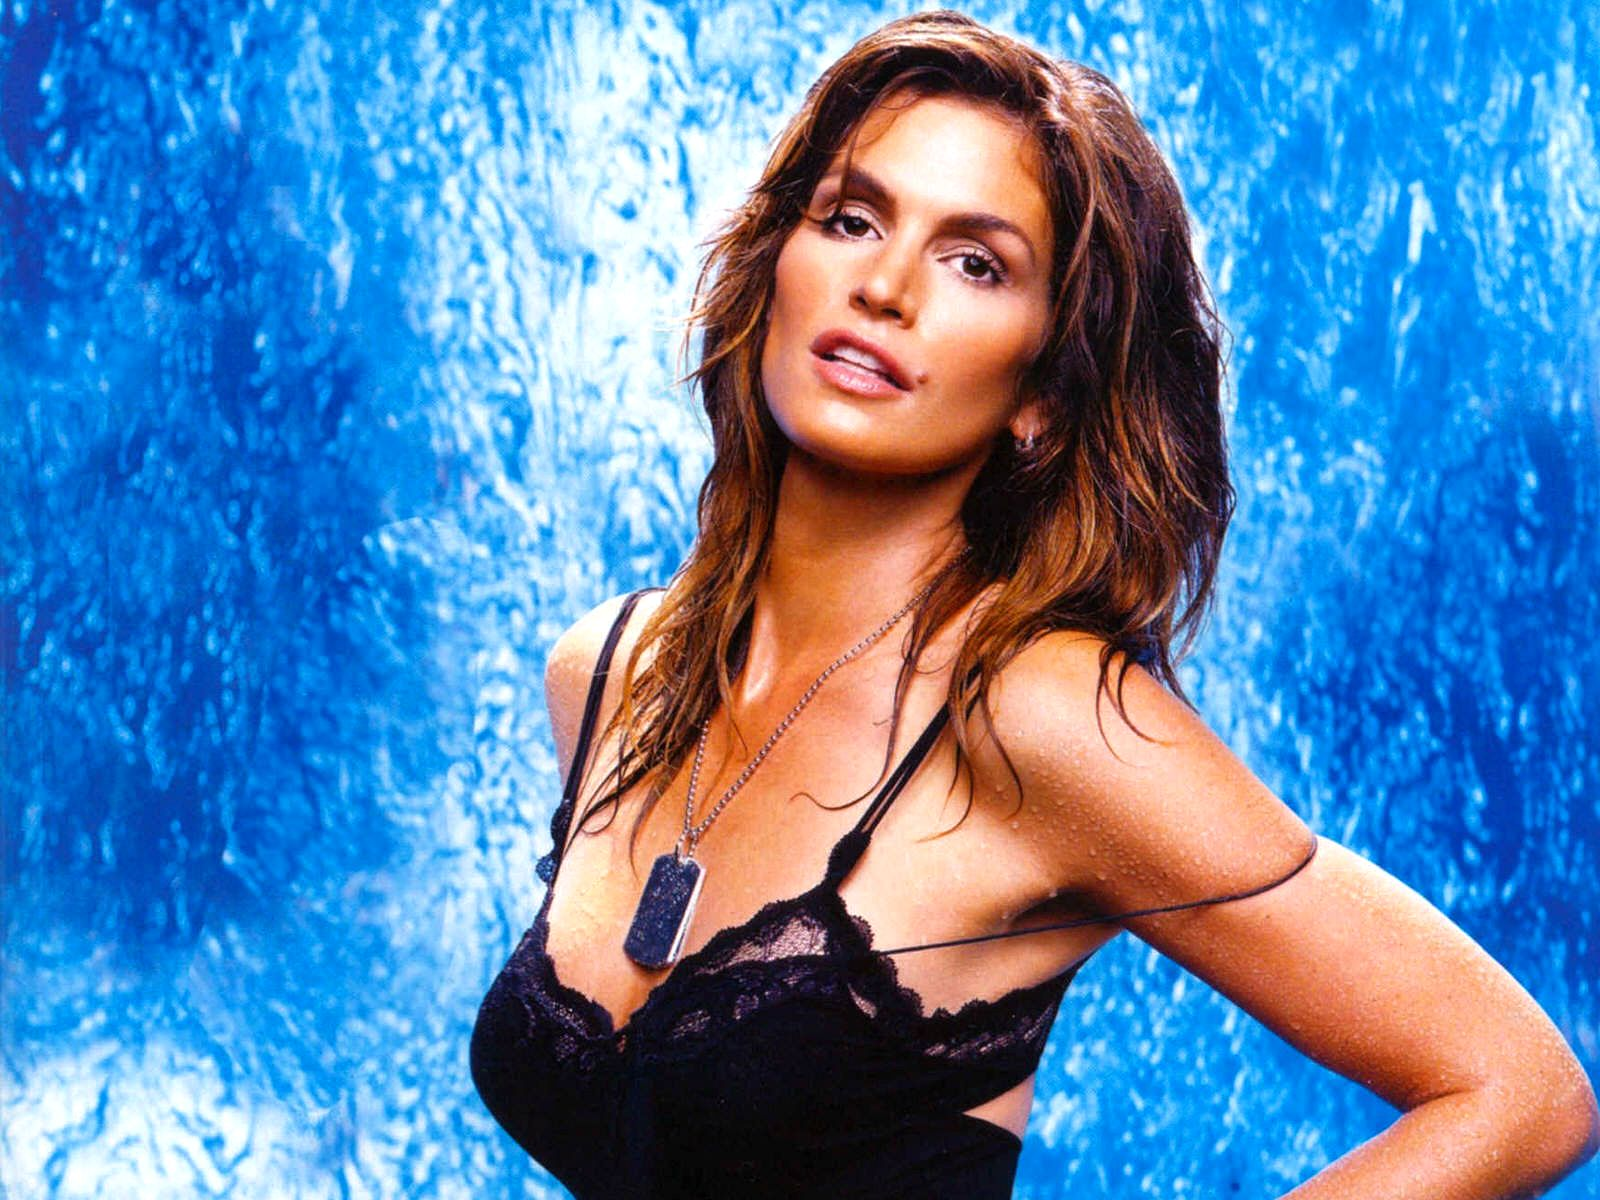 1600x1200 - Cindy Crawford Wallpapers 20